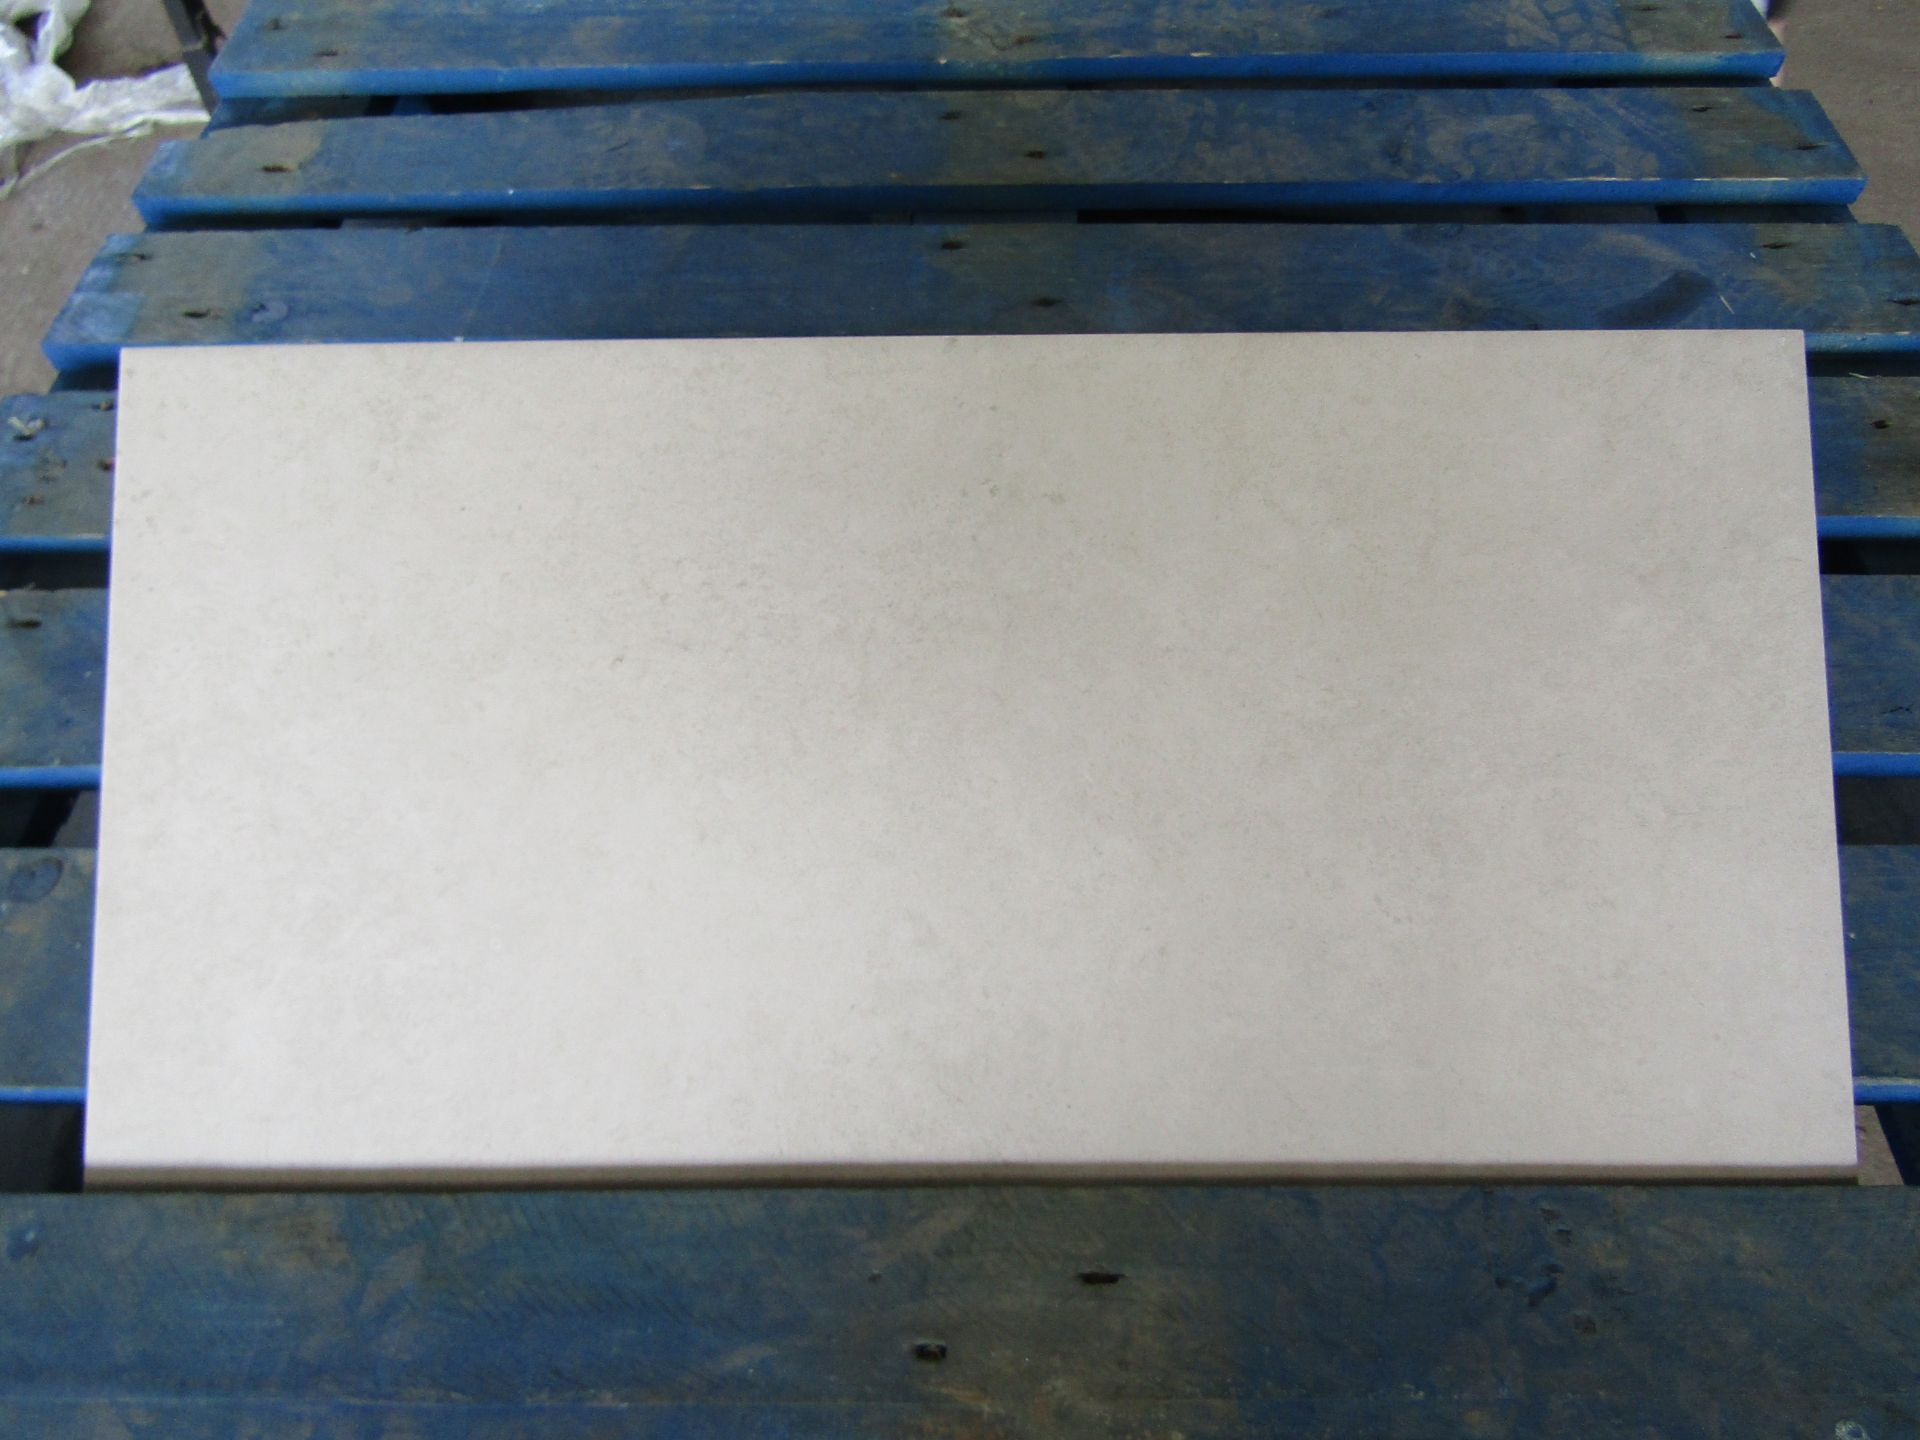 Pallet of 40x Packs of 5 Natural Pebble 300x600 wall and Floor Tiles By Johnsons, New, the pallet